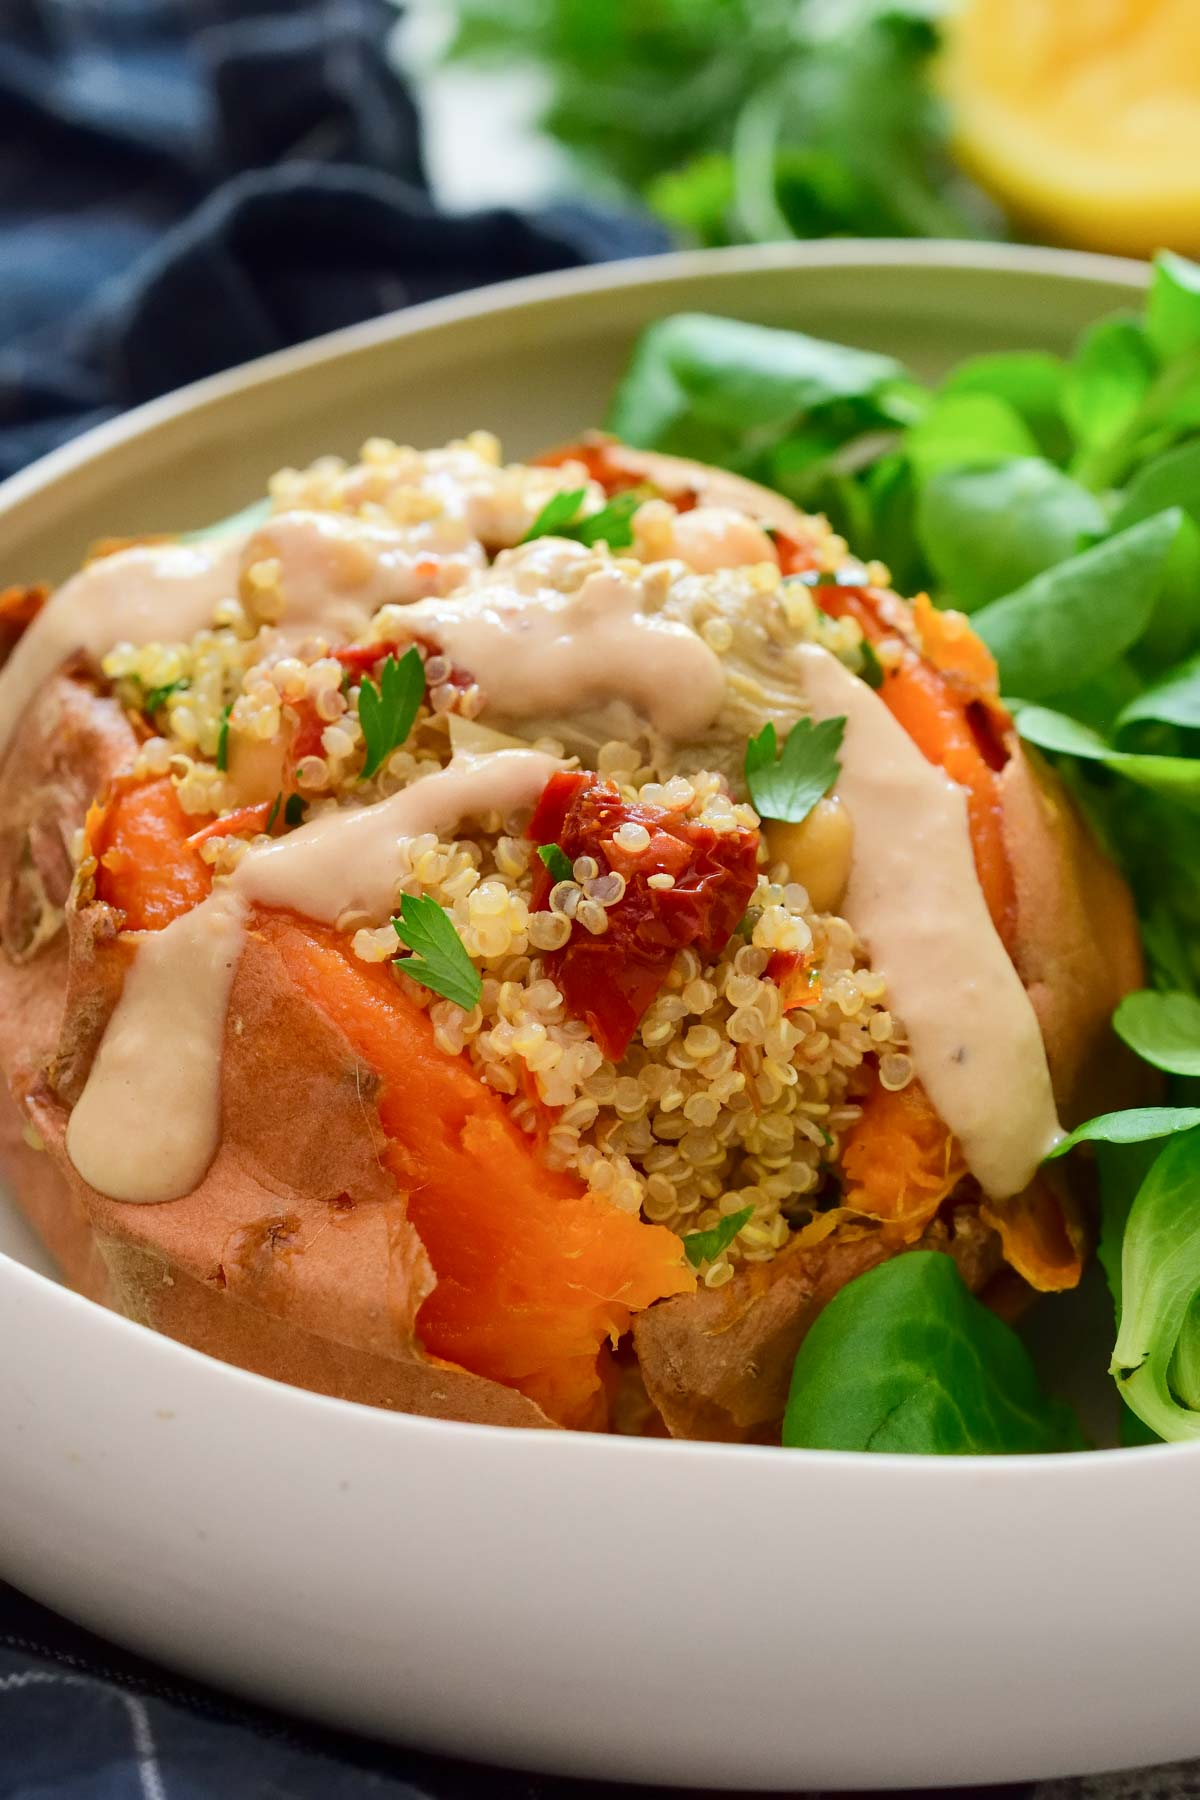 A close-up image of a quinoa-stuffed sweet potato with hummus sauce on top. Green salad in the background.